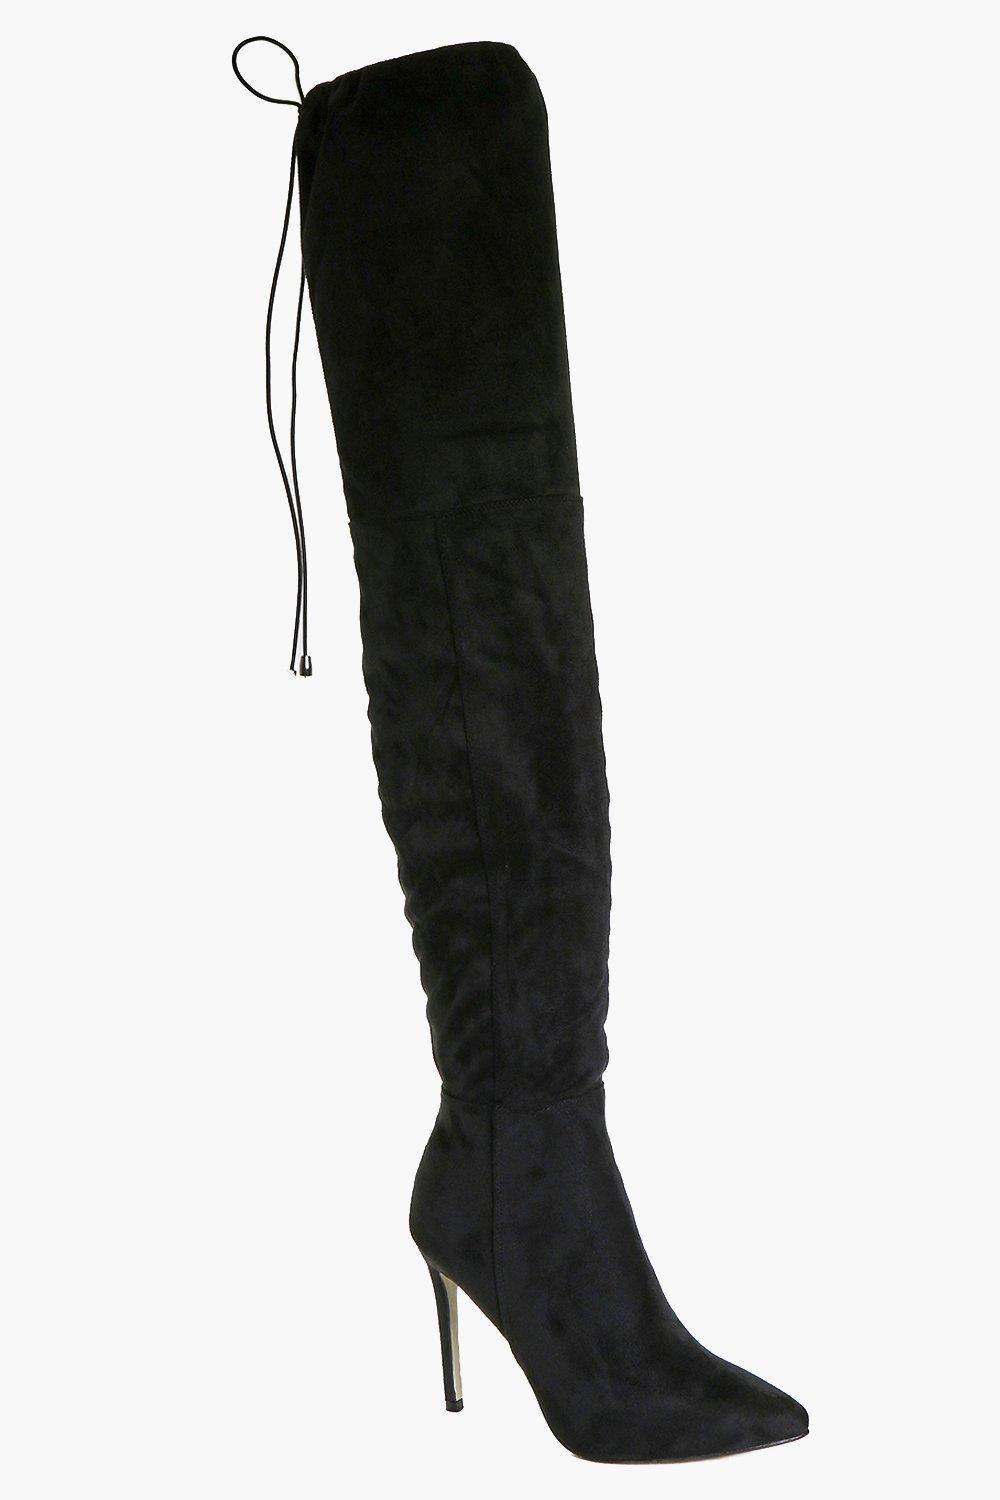 bb86aa84c0369 Womens Black Pointed Toe Thigh High Boots. Hover to zoom